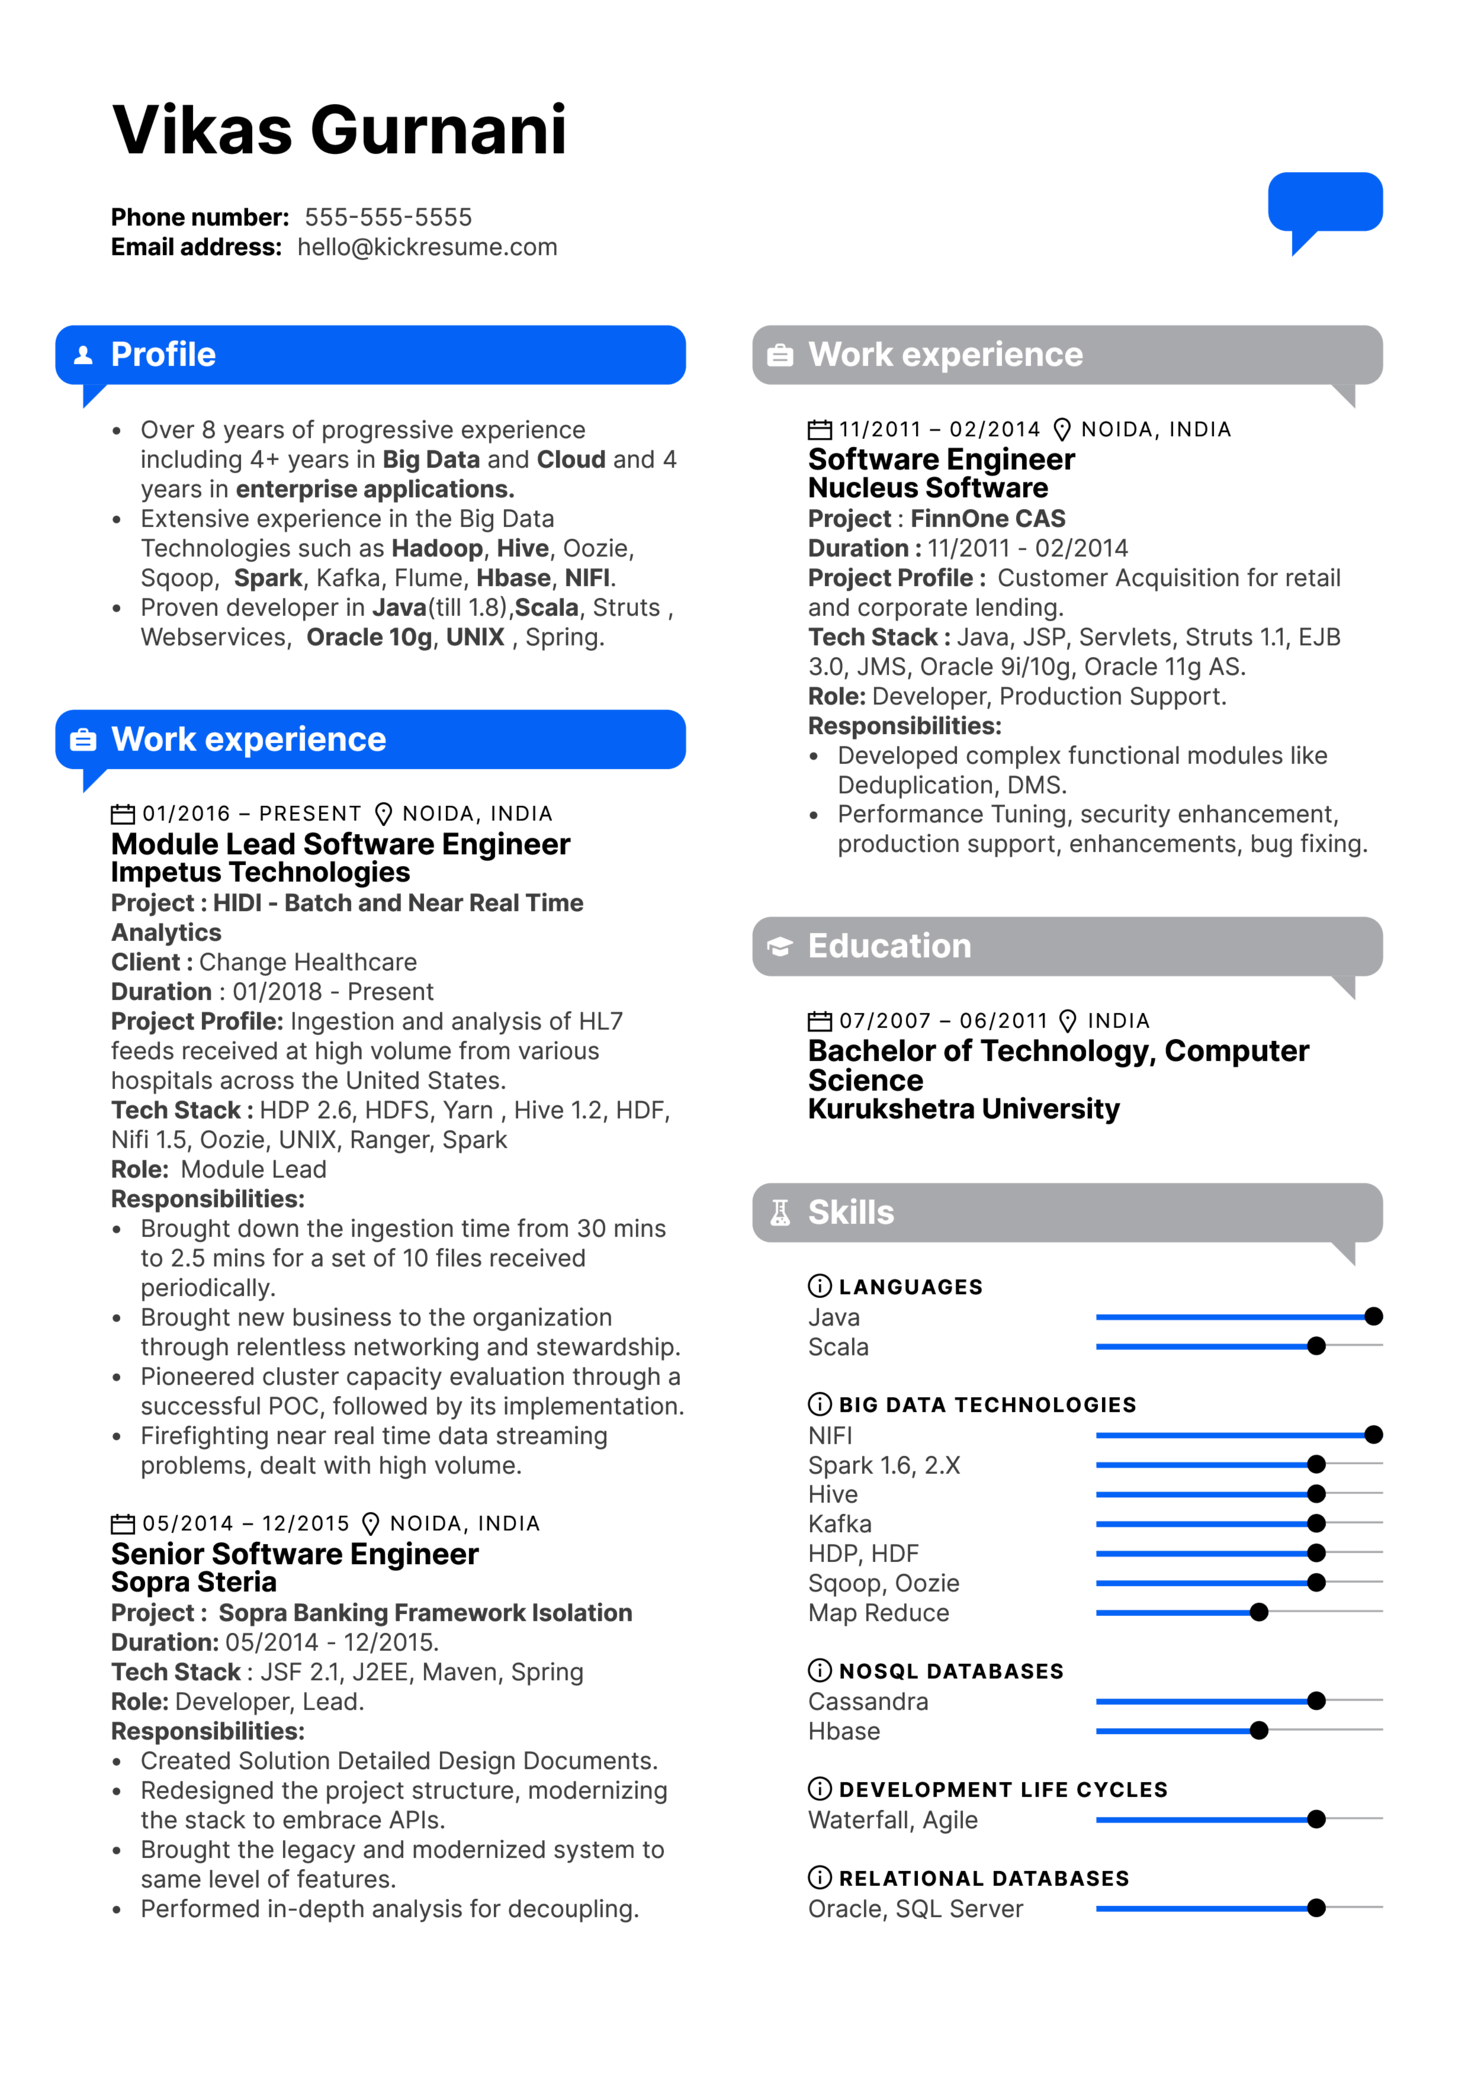 Impetus Technologies Module Lead Software Engineer Resume Example (Part 1)